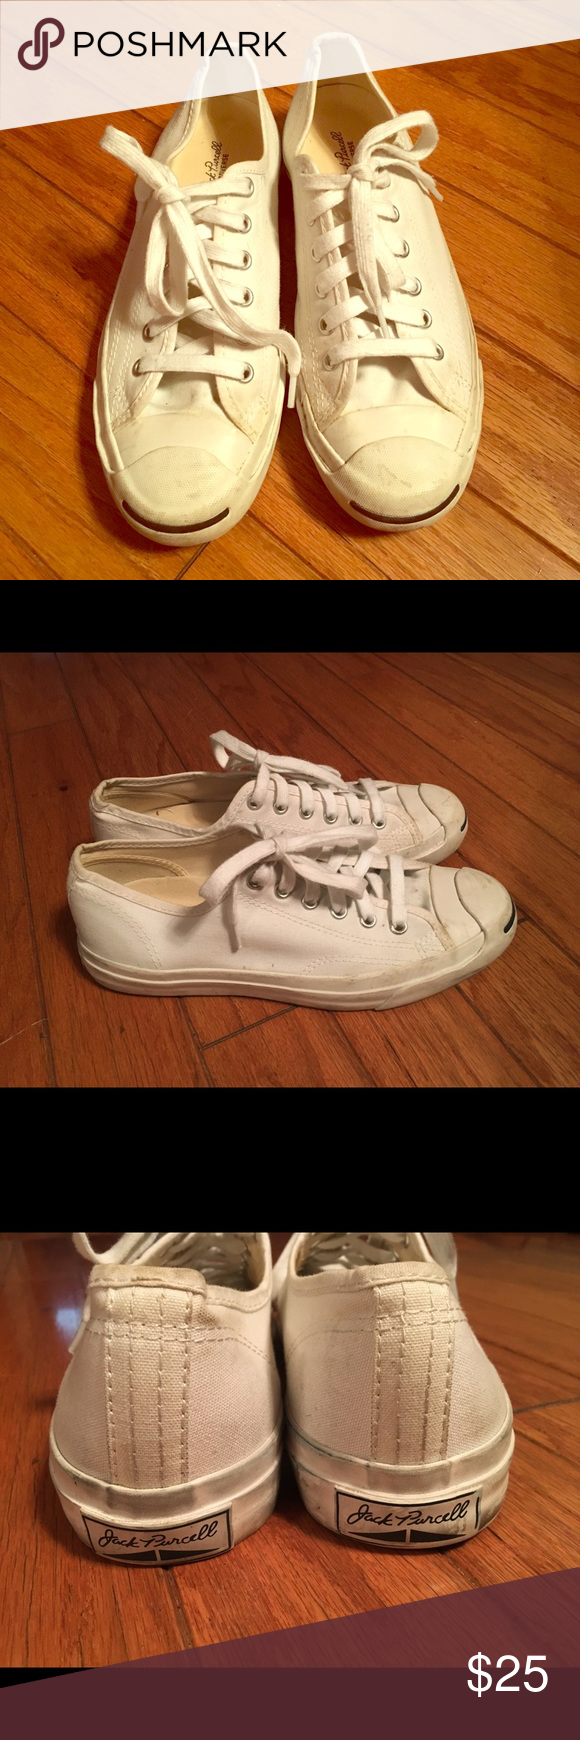 Converse Jack Purcell white canvas size women's 8 Converse jack Purcell shoes. Size women's 8 or EU 39. Shoes are canvas and in great shape. No holes or smells. They show some light normal wear. I'm sure they can be cleaned up easily. Converse Shoes Sneakers